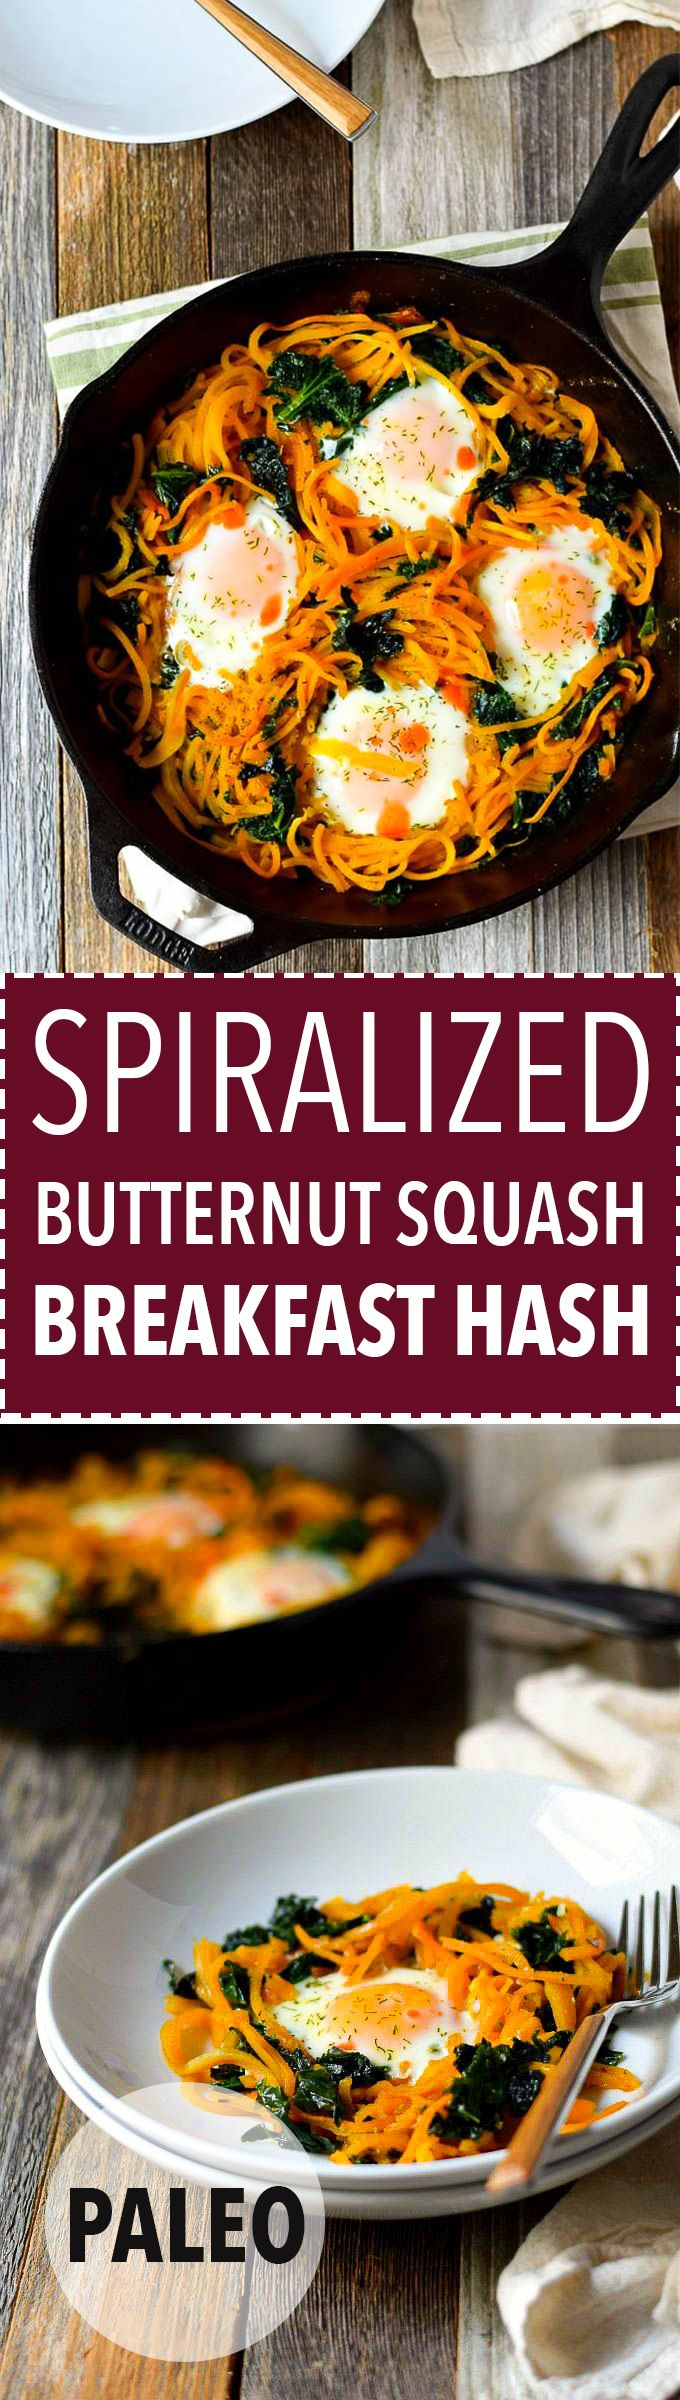 Butternut squash noodle hash is a healthy, filling breakfast with spiralized butternut squash noodles! (Paleo, Whole30)